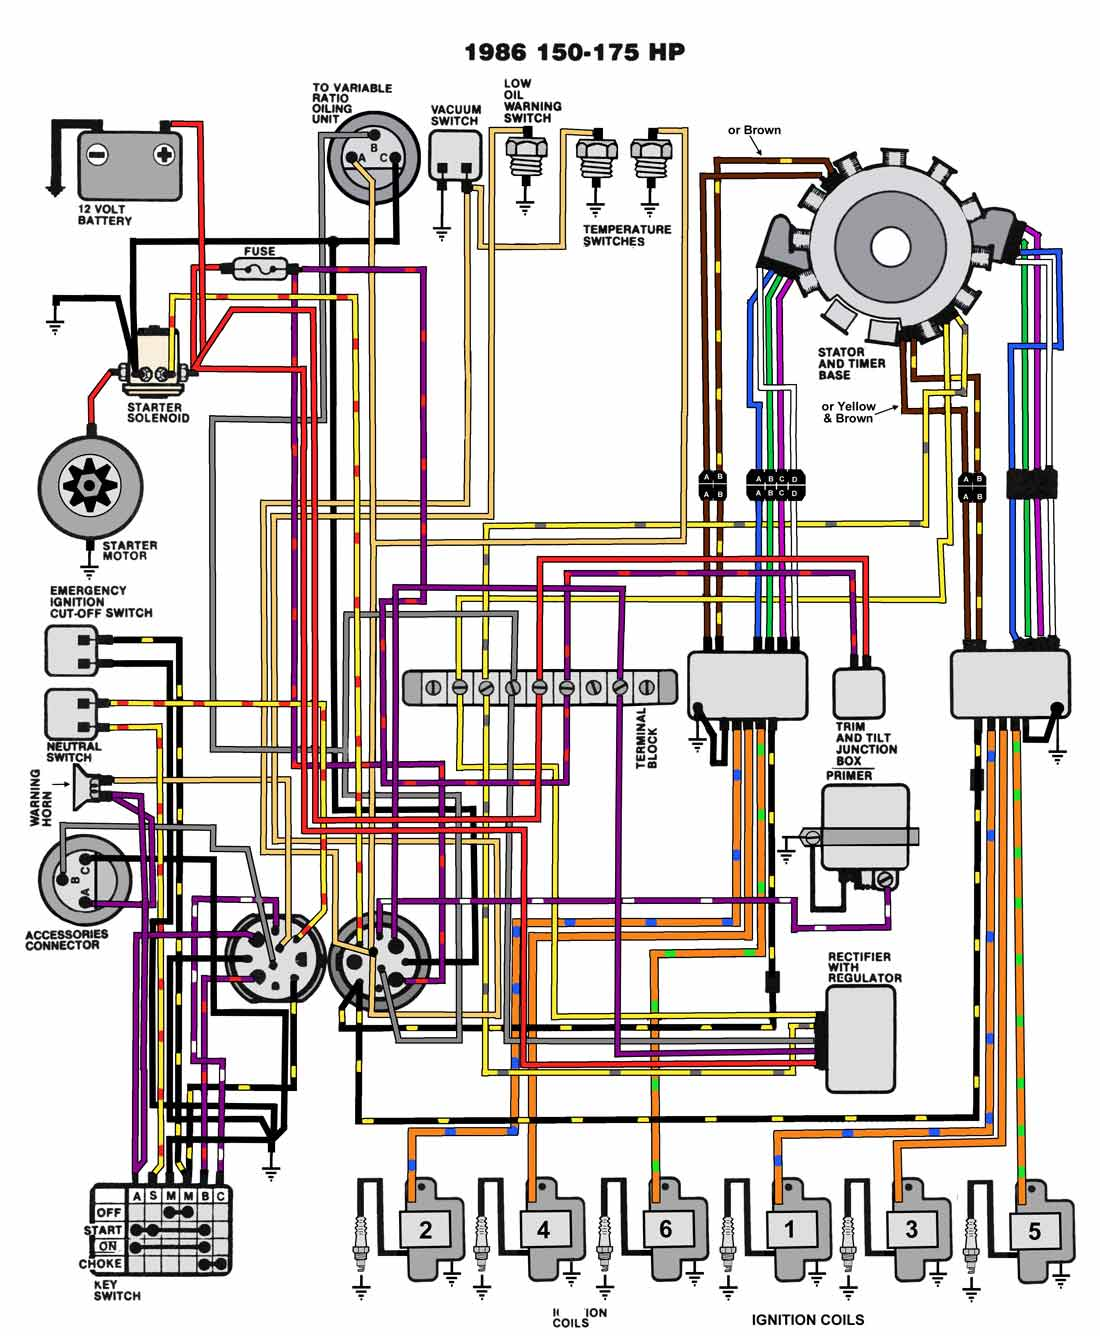 hight resolution of etec wiring diagram wiring diagram portal geothermal power diagram etec oil diagram